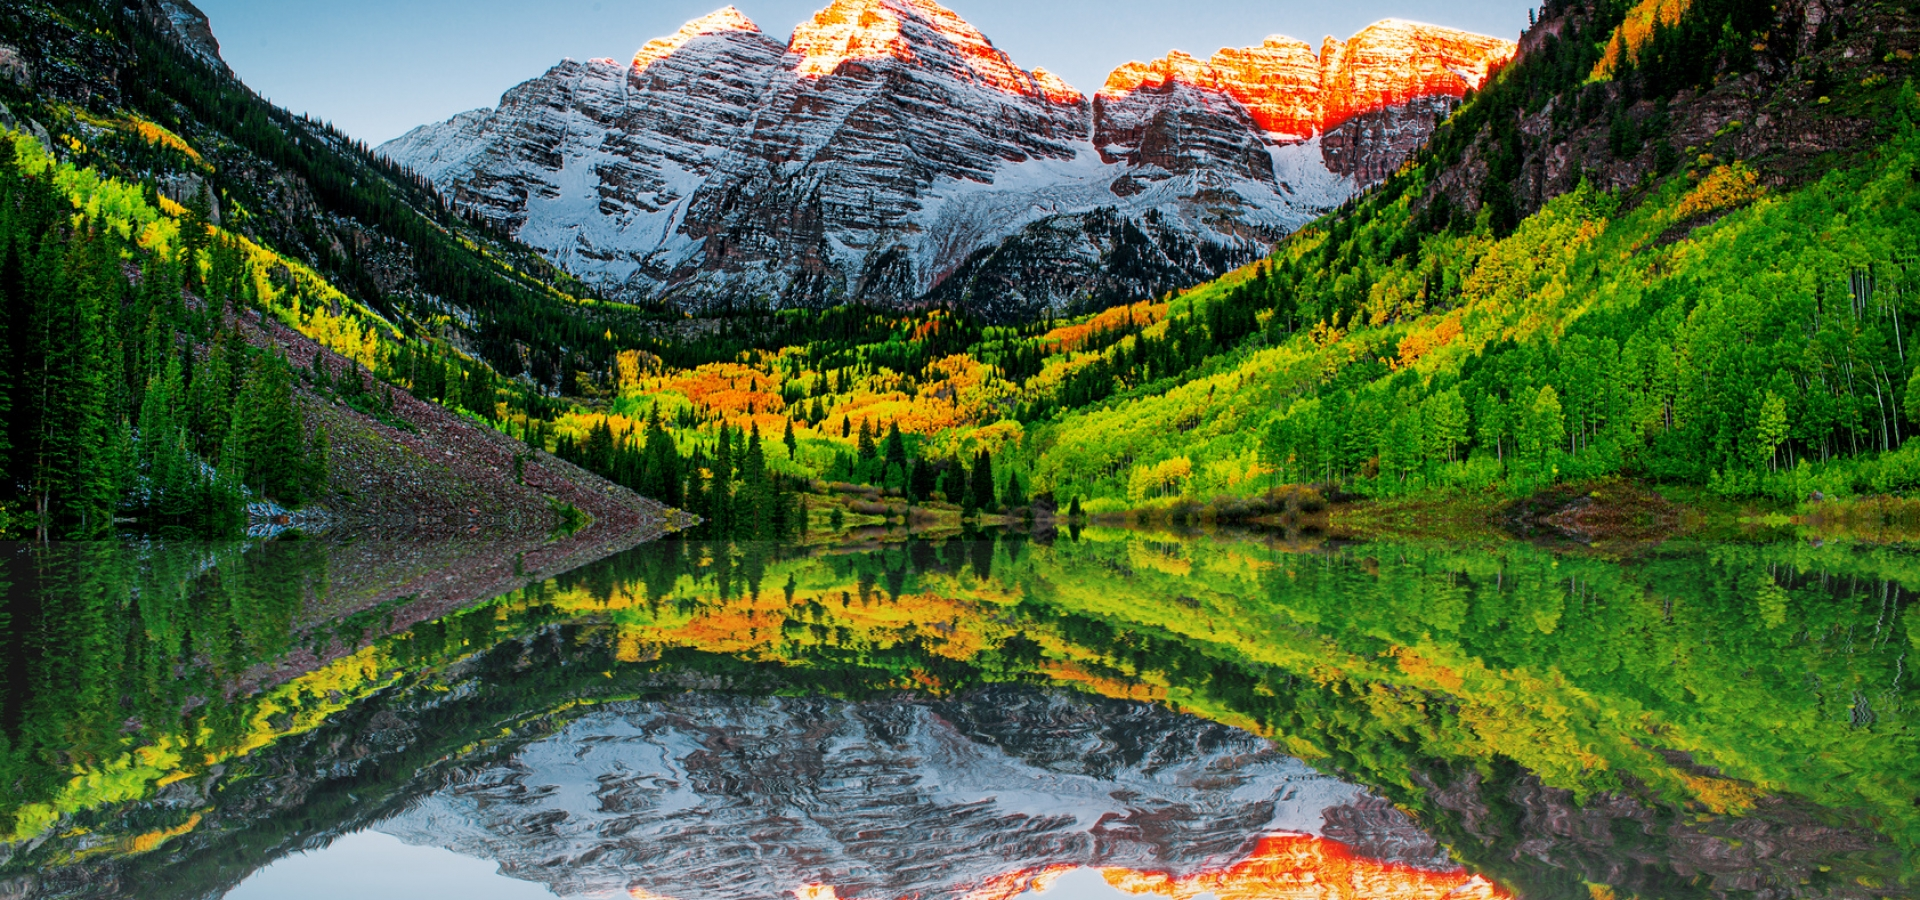 Maroon Bells Lake at Rocky Mountain National Park